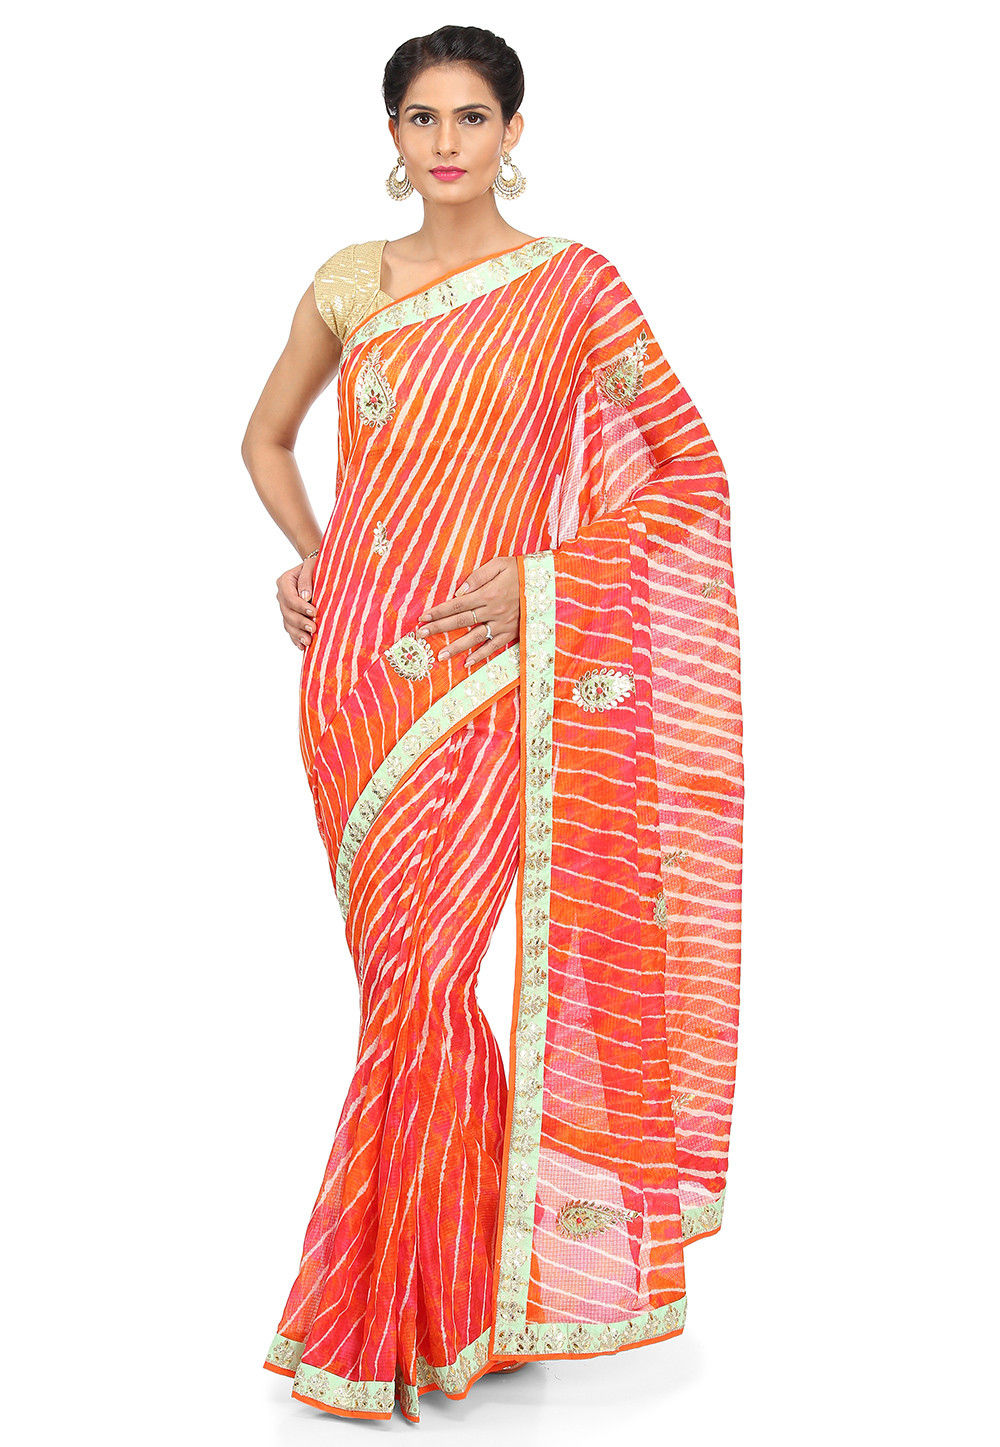 Leheriya Kota Silk Saree in Shaded Orange and Pink